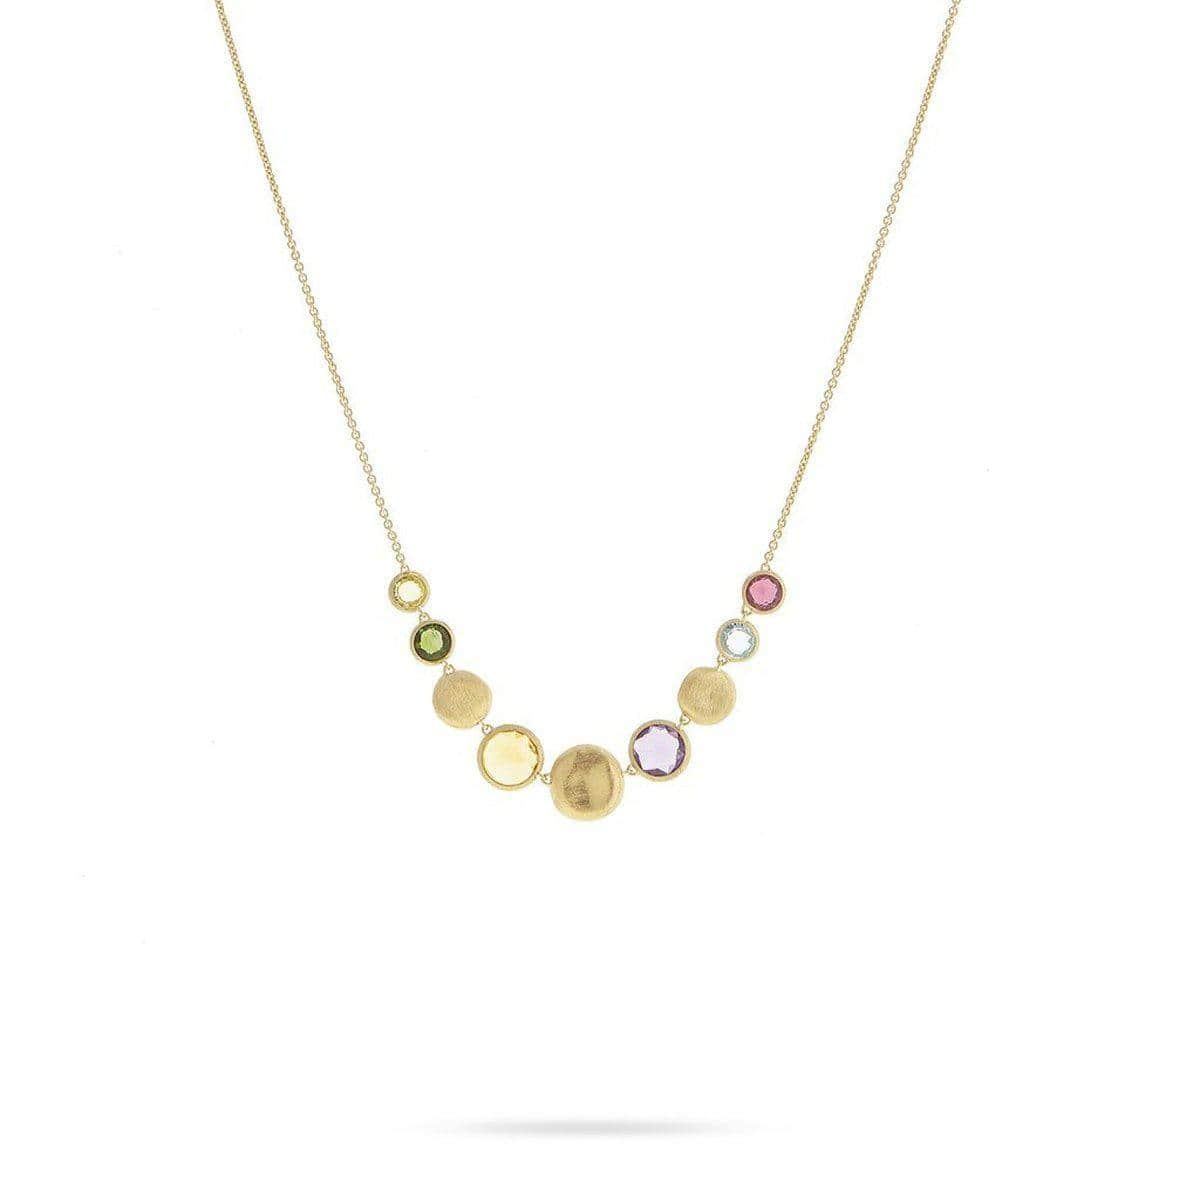 18K Jaipur Necklace - CB2241 MIX01 Y 16.5""